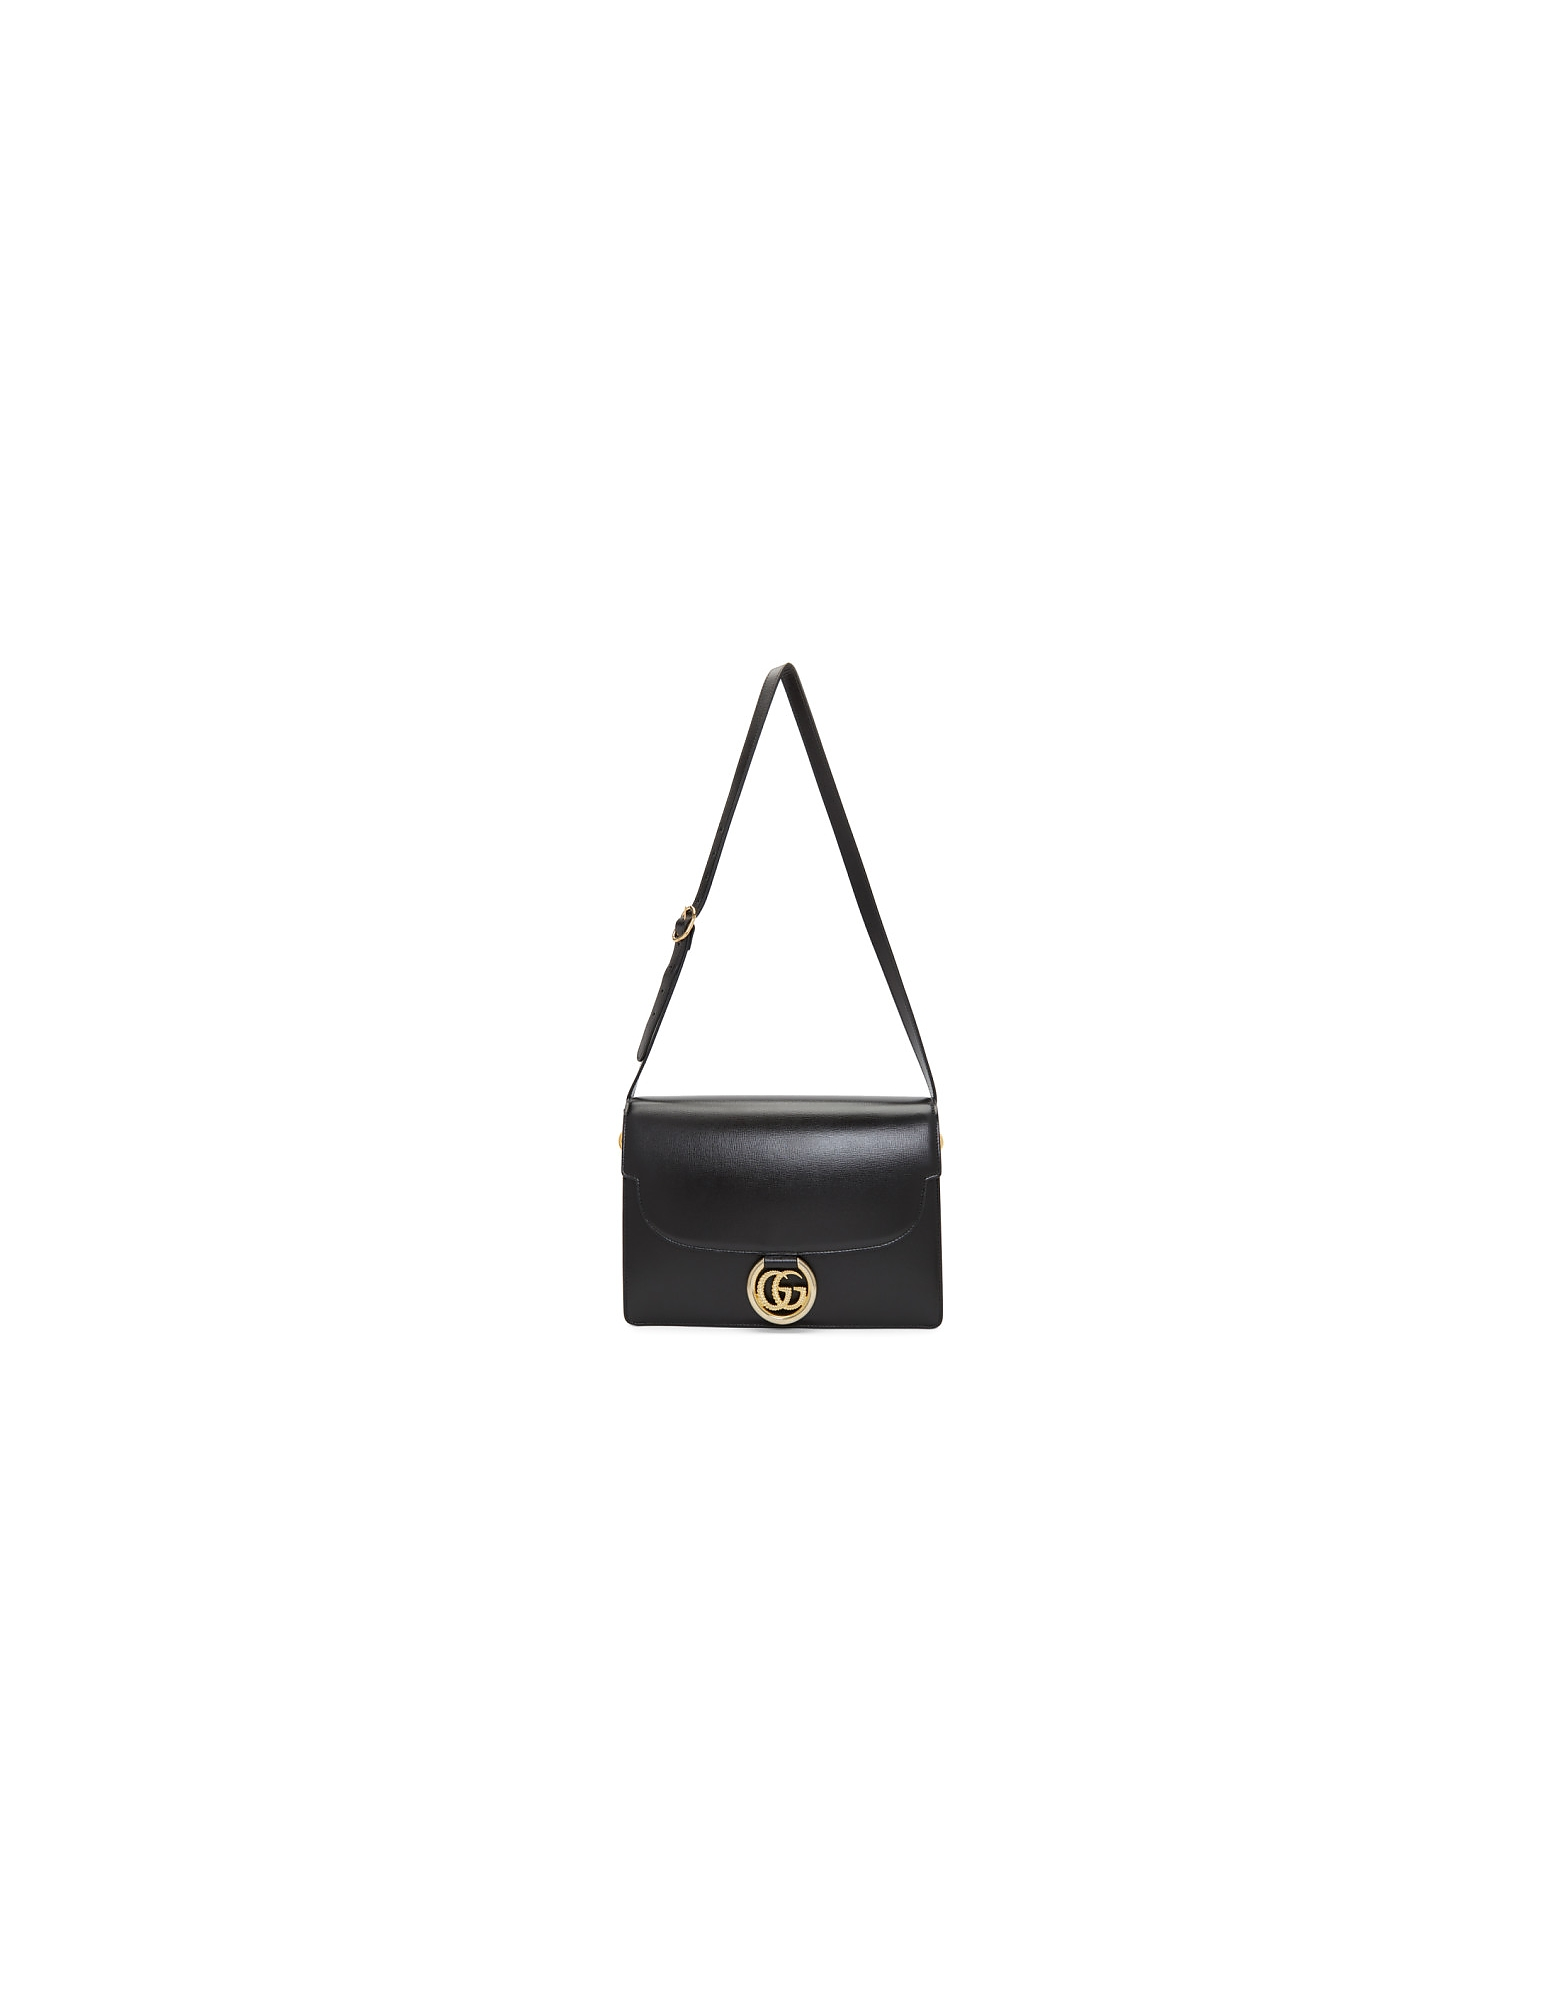 Gucci Designer Handbags, Black GG Ring Bag